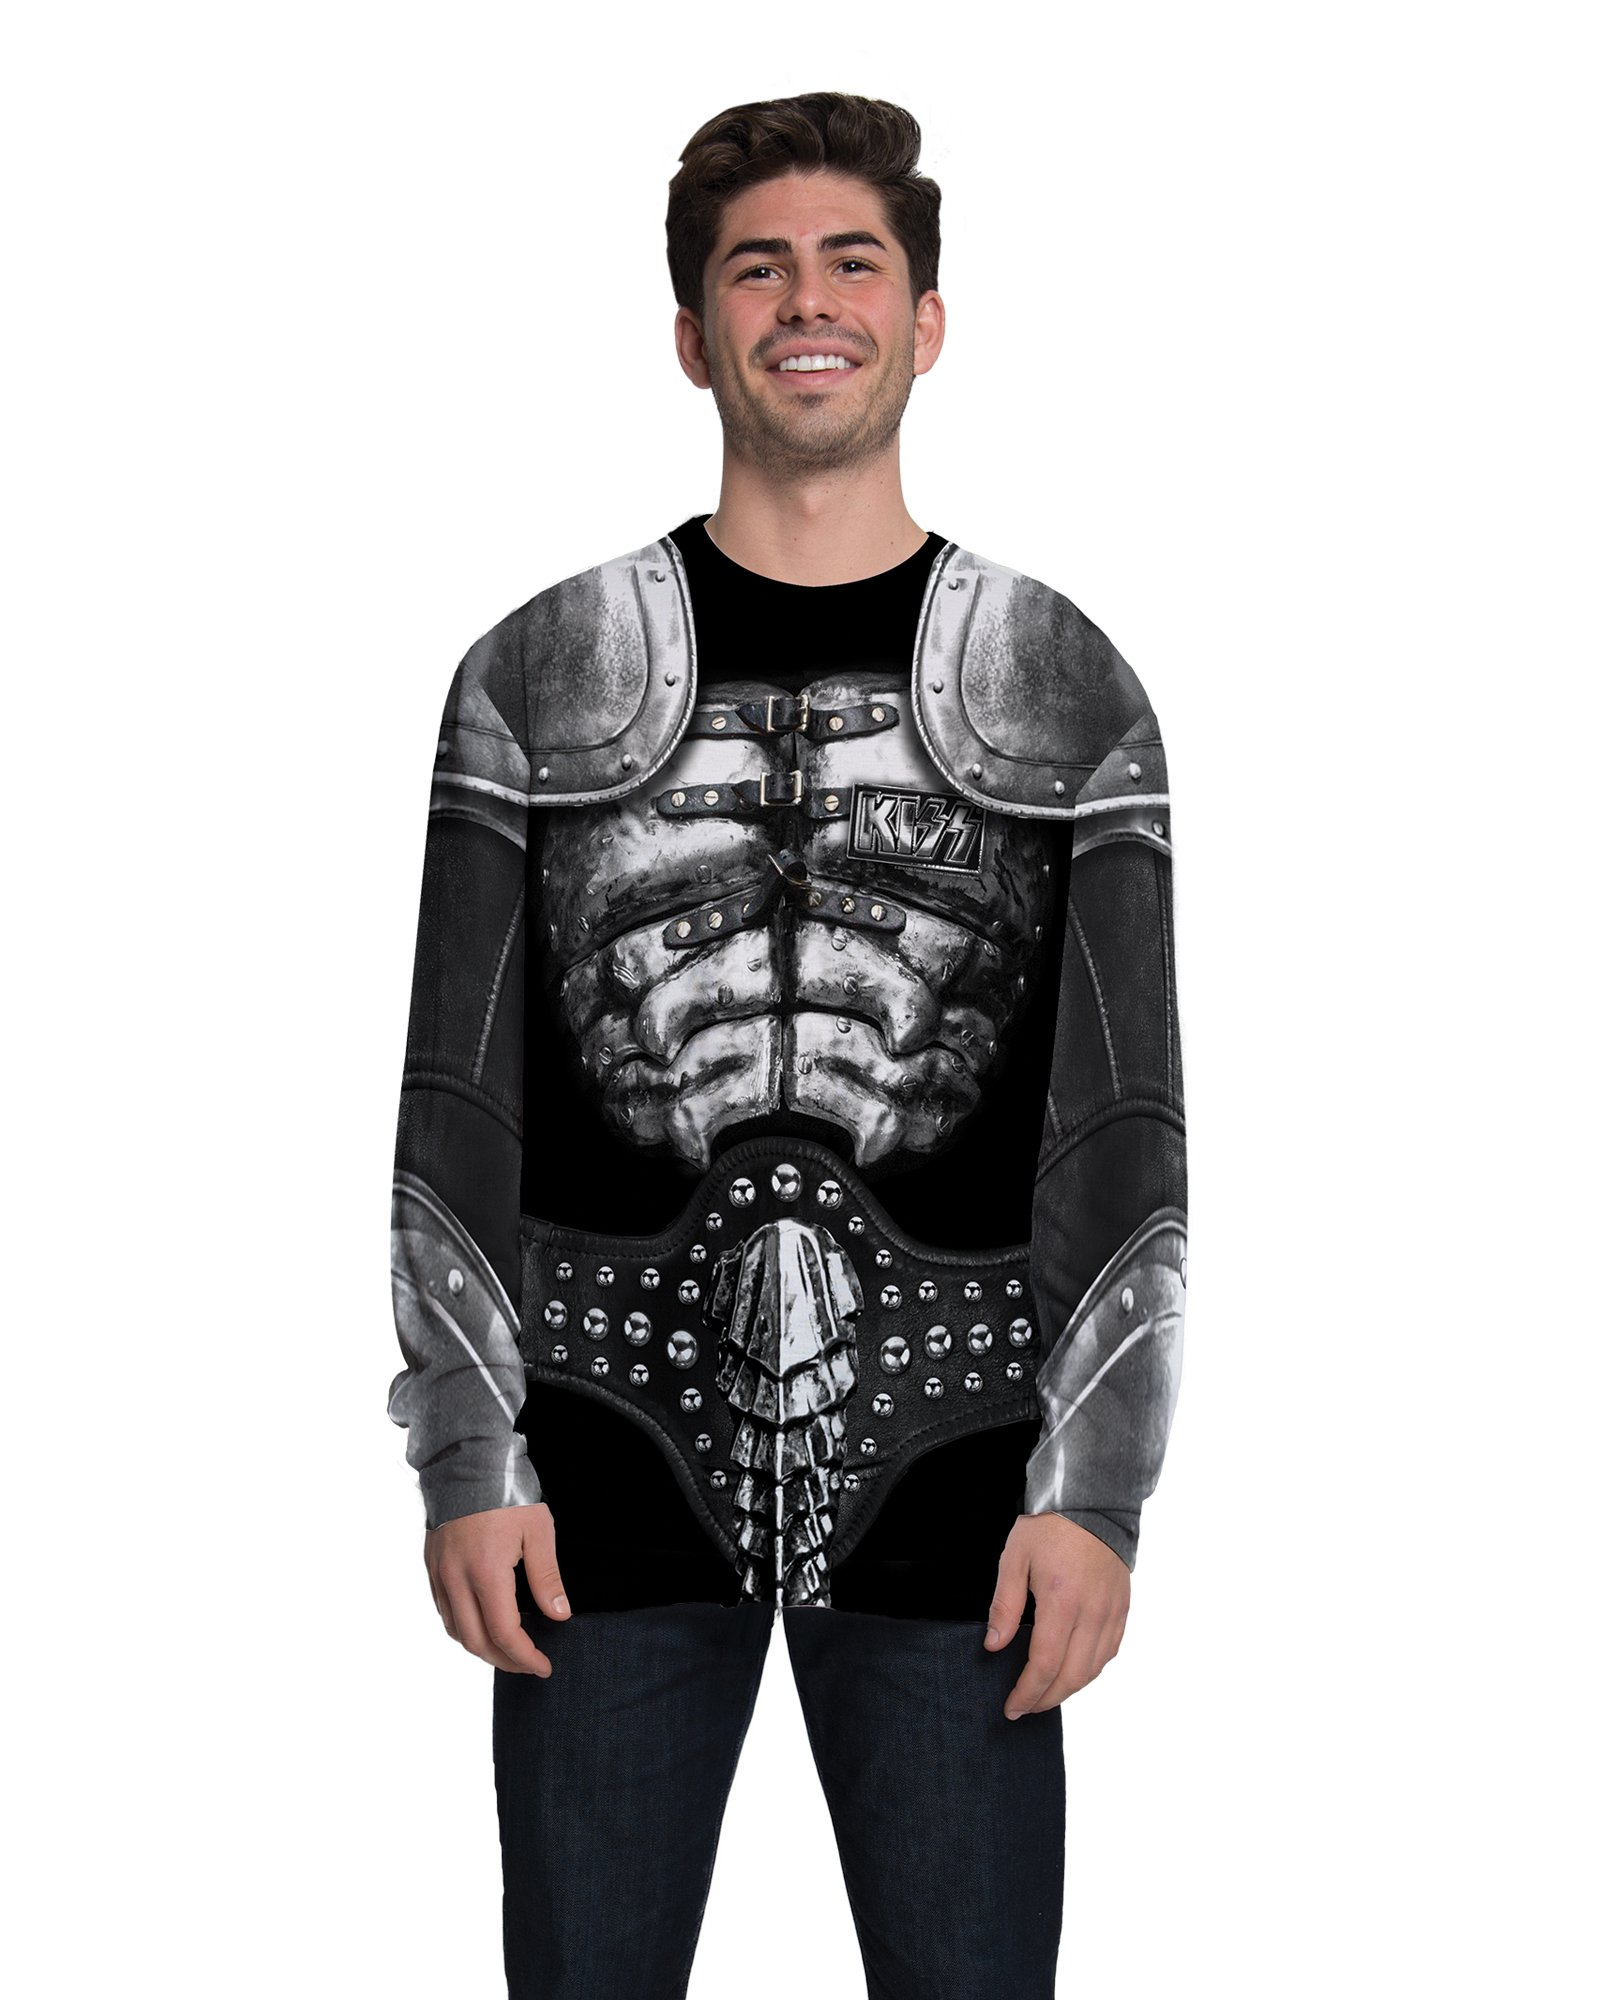 Faux Real Men's Halloween 3D Photo-Realistic Long Sleeve T-Shirt